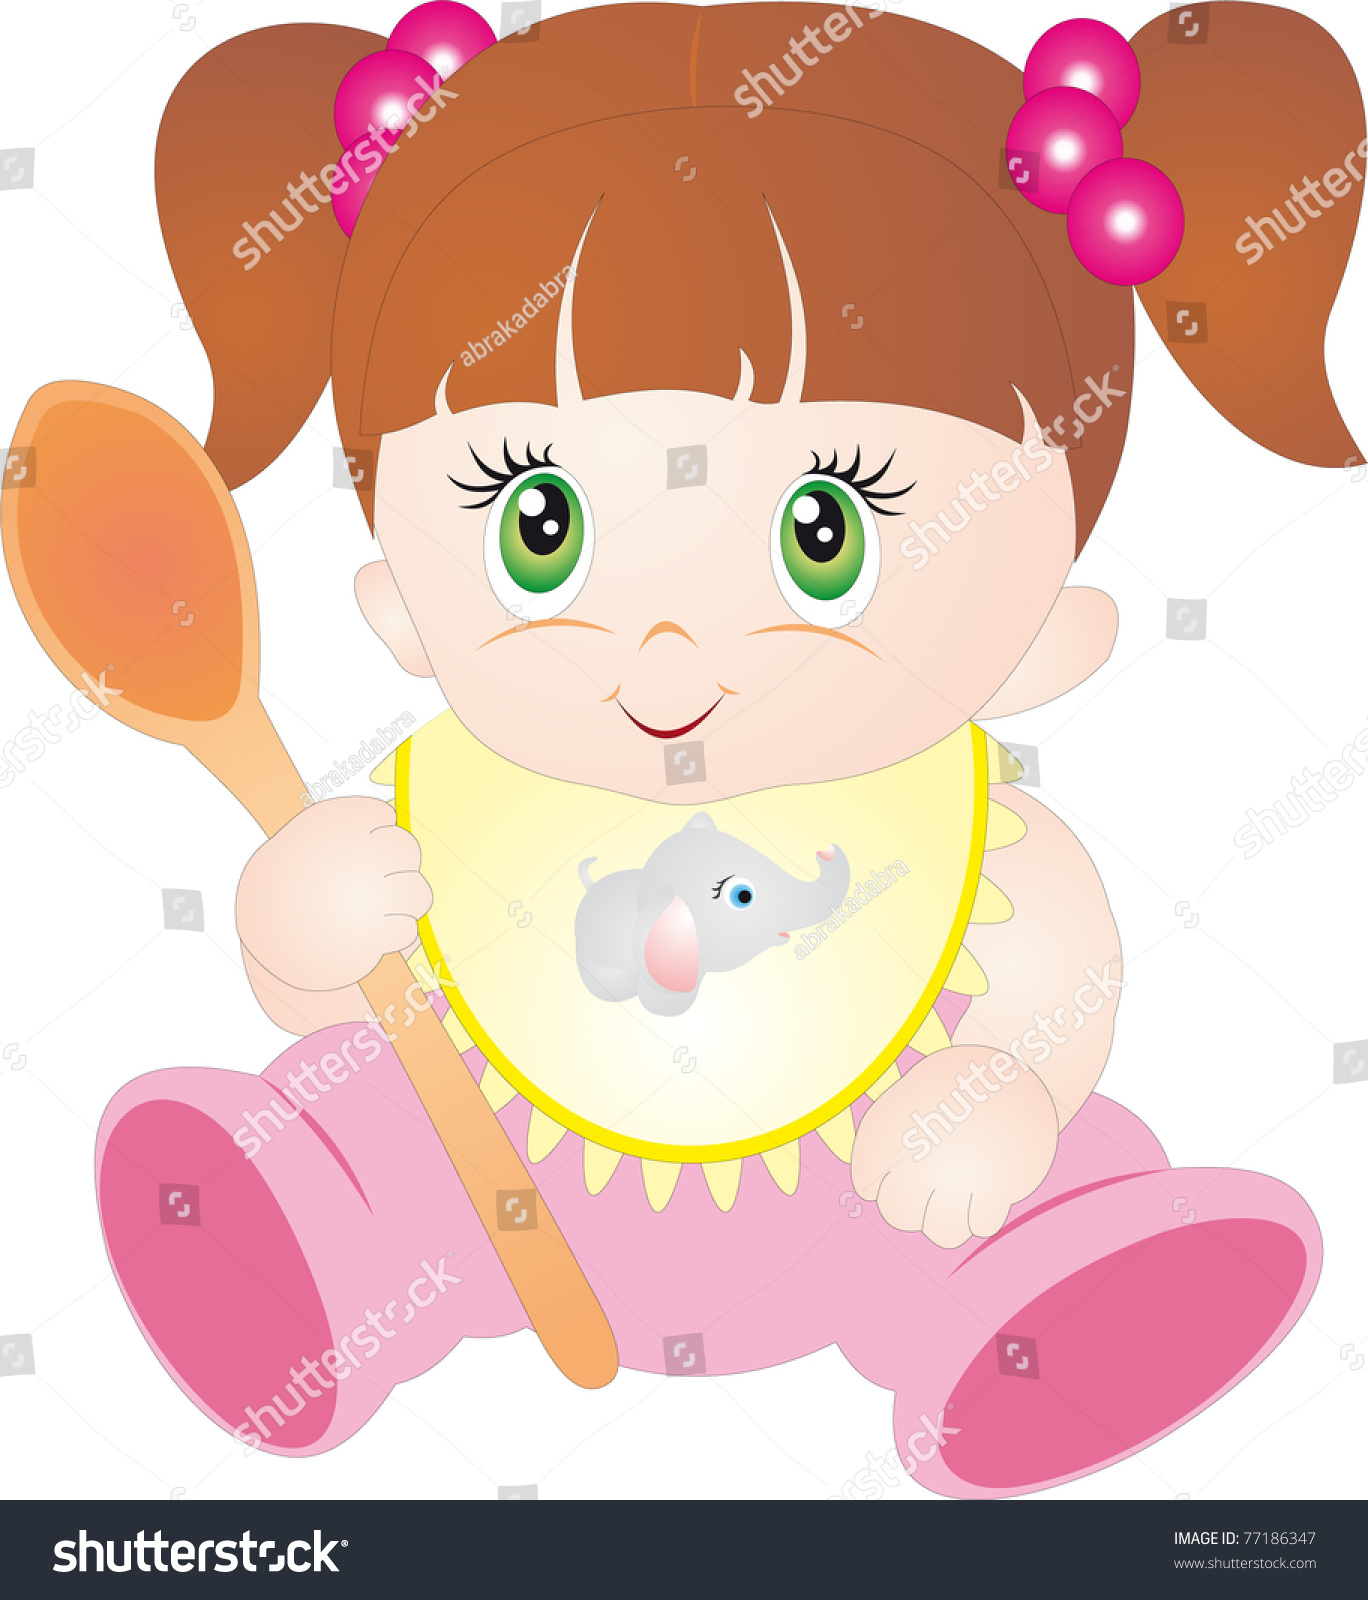 Illustration of a little girl eating food Stock Photo - Alamy